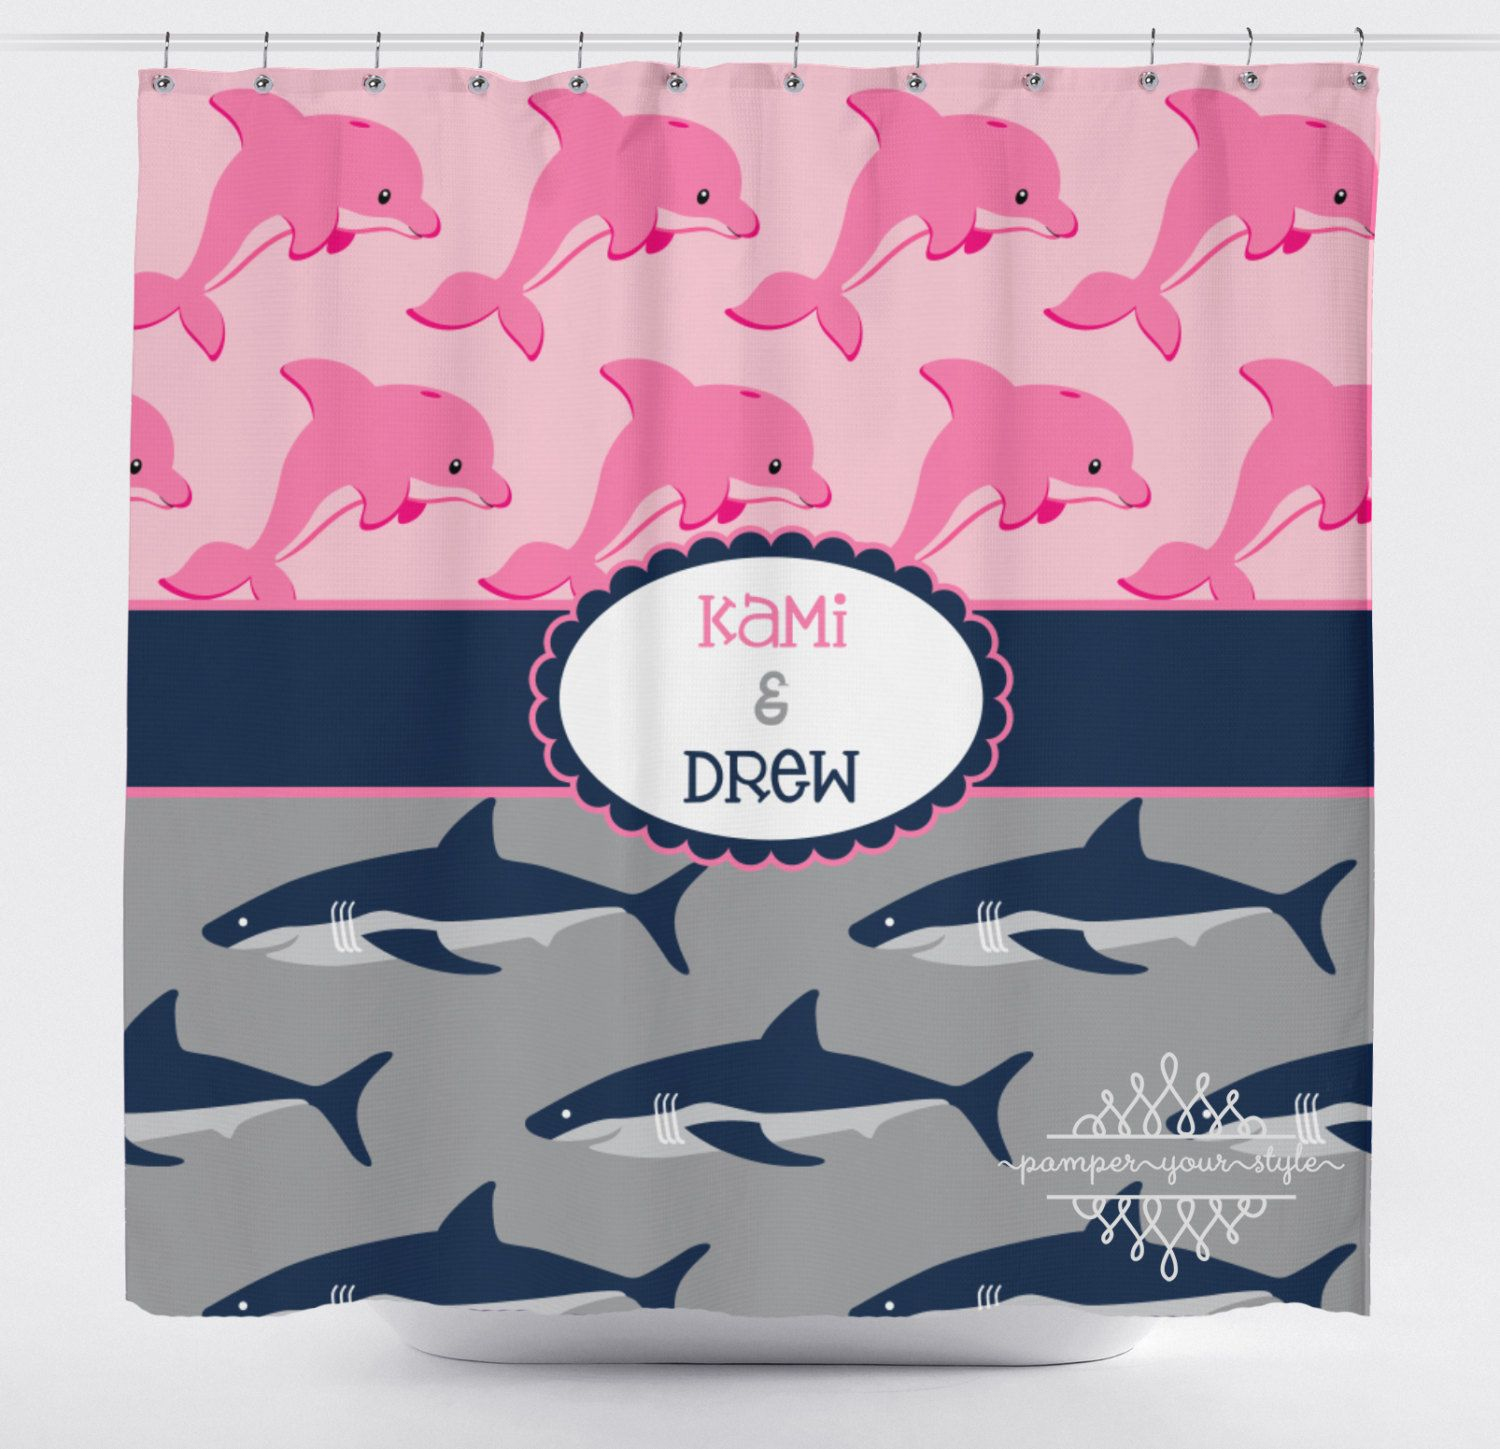 Shower curtains for girls - Dolphin And Shark Shower Curtain Personalized Sibling Shower Curtain Boy And Girl Shower Curtain Jack And Jill Shower Curtain